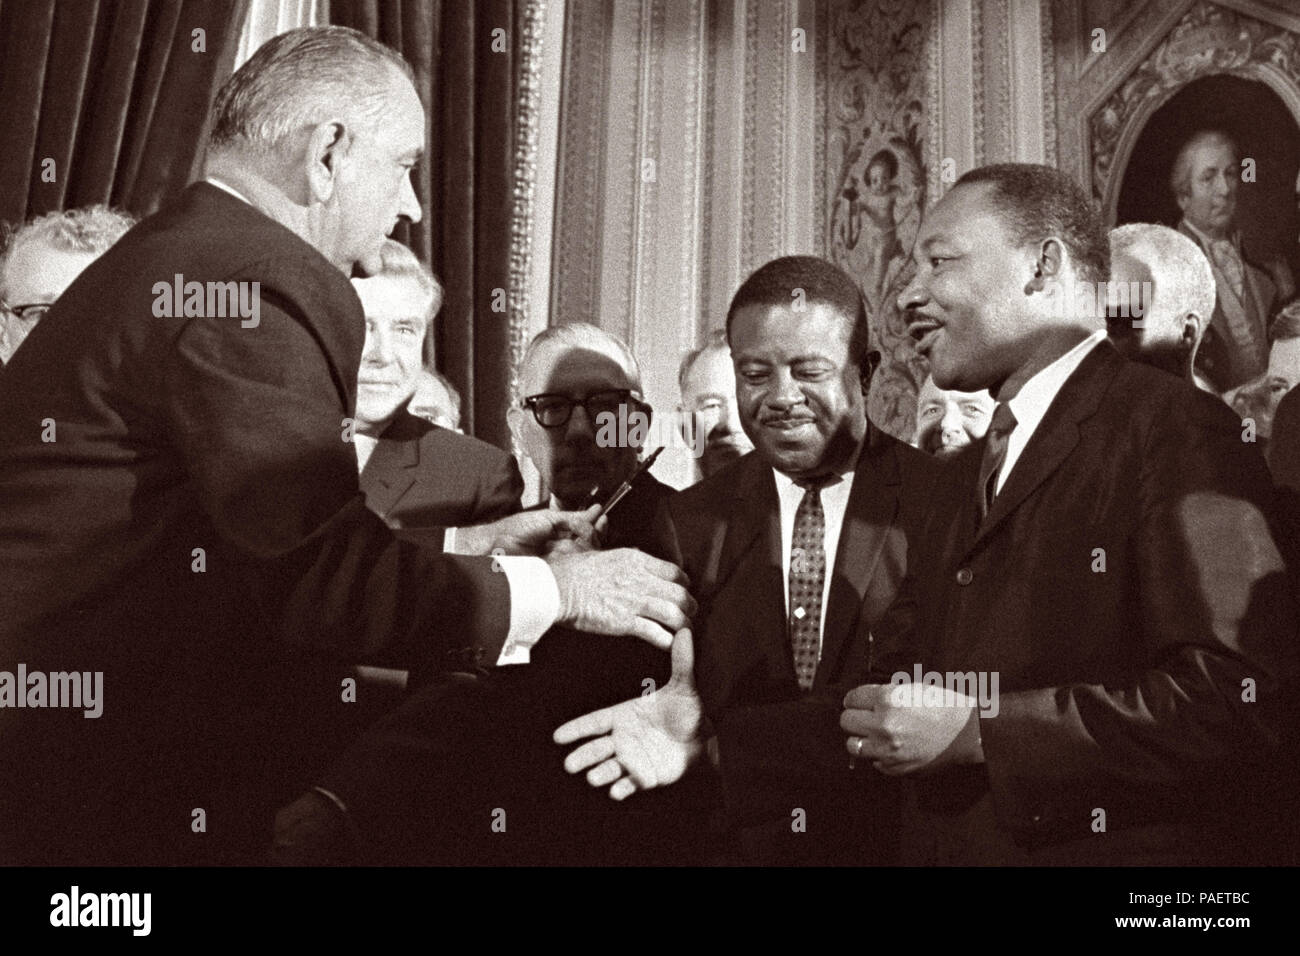 President Lyndon B. Johnson moves to shake hands with Dr. Martin Luther King after the signing of the Voting Rights Act on August 6, 1965 in the President's Room of the U.S. Capitol in Washington, D.C. Stock Photo